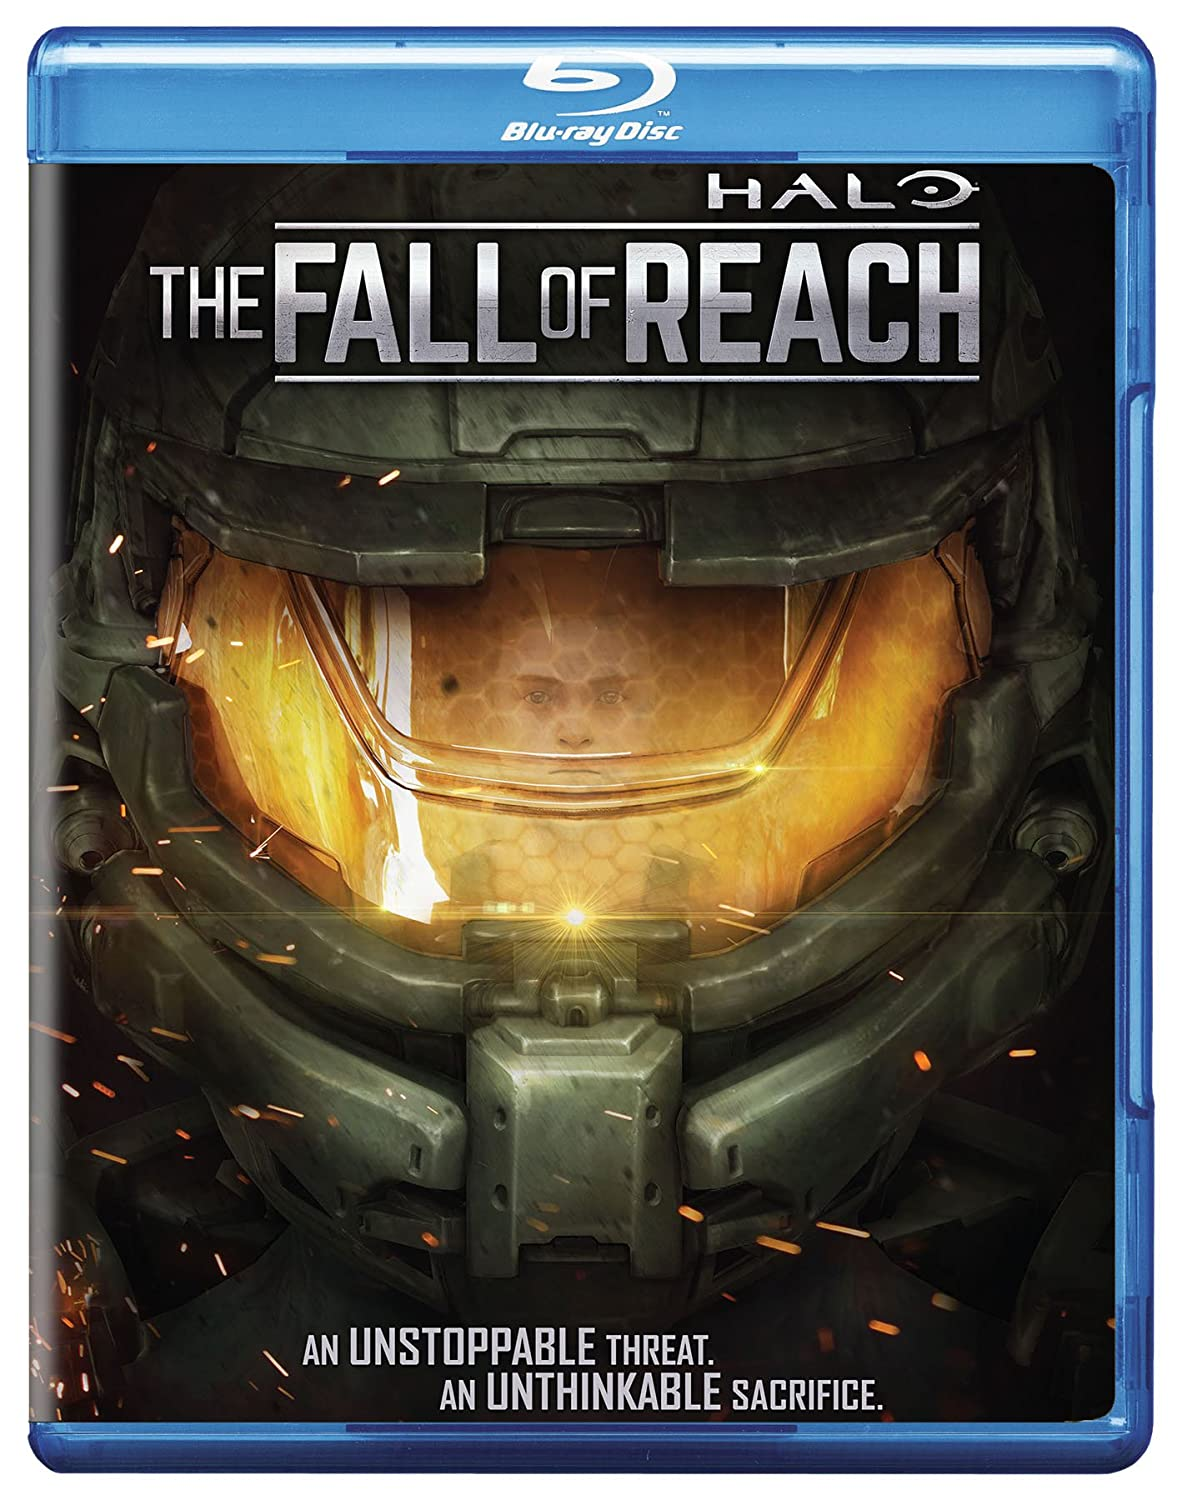 Halo The Fall Of Reach (2015) Full Movie Download